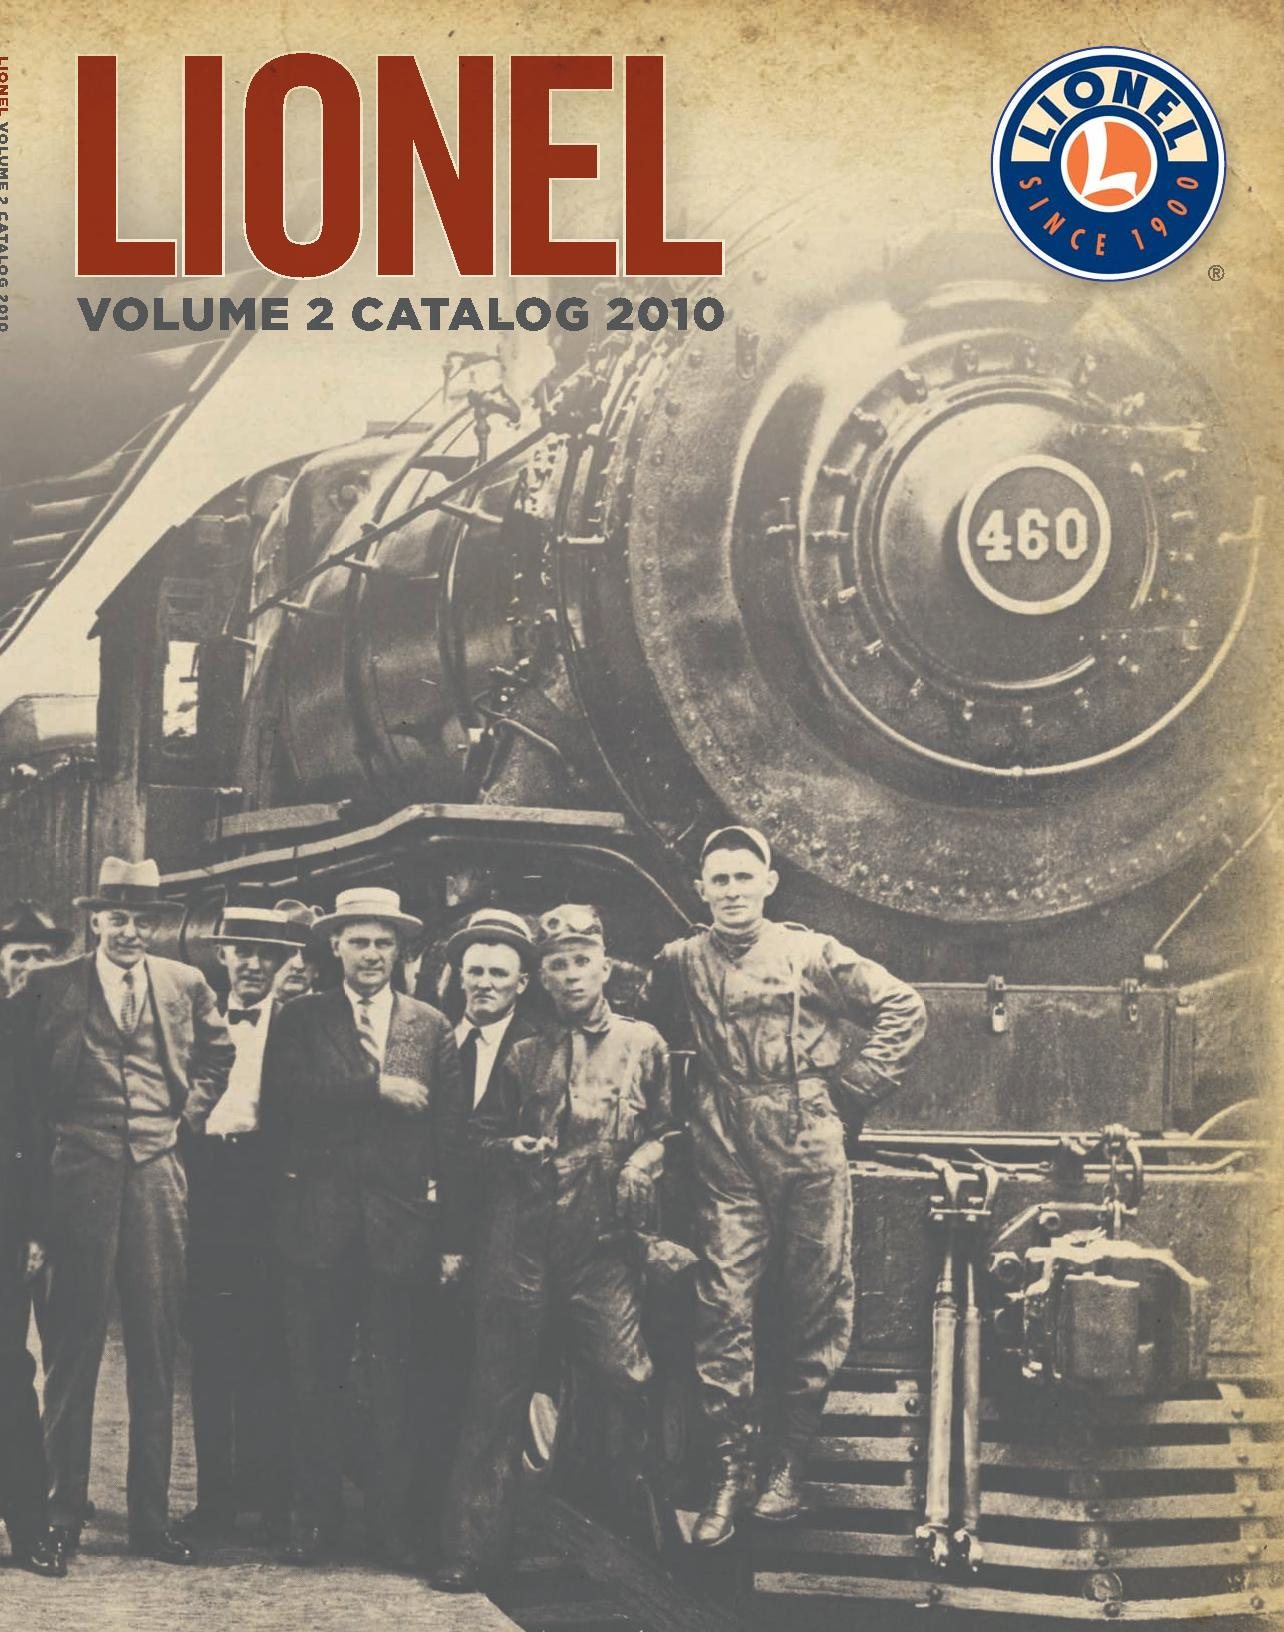 Lionel Catalogs - Volume 2 2010